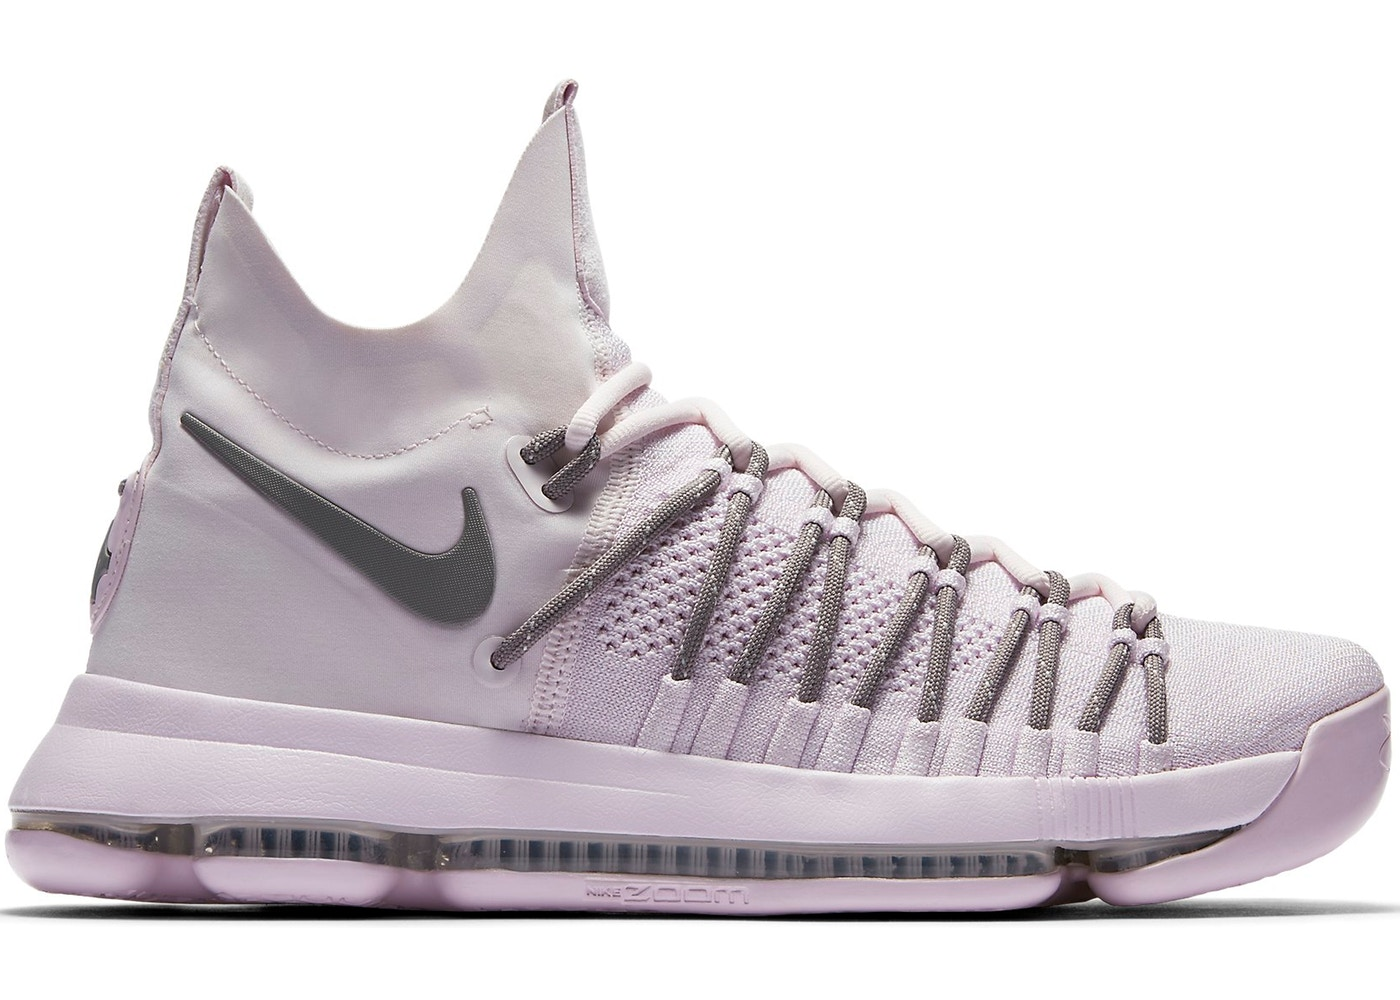 ff0cfcc552f1 Buy Nike KD 9 Shoes   Deadstock Sneakers